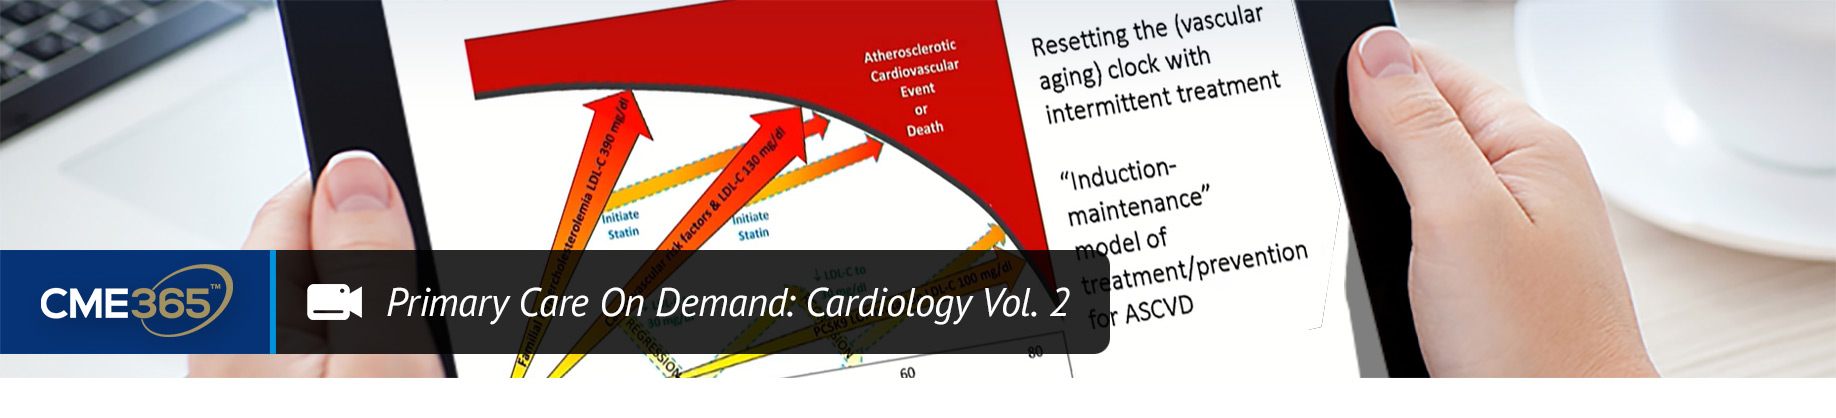 Primary Care On Demand: Cardiology Vol. 2